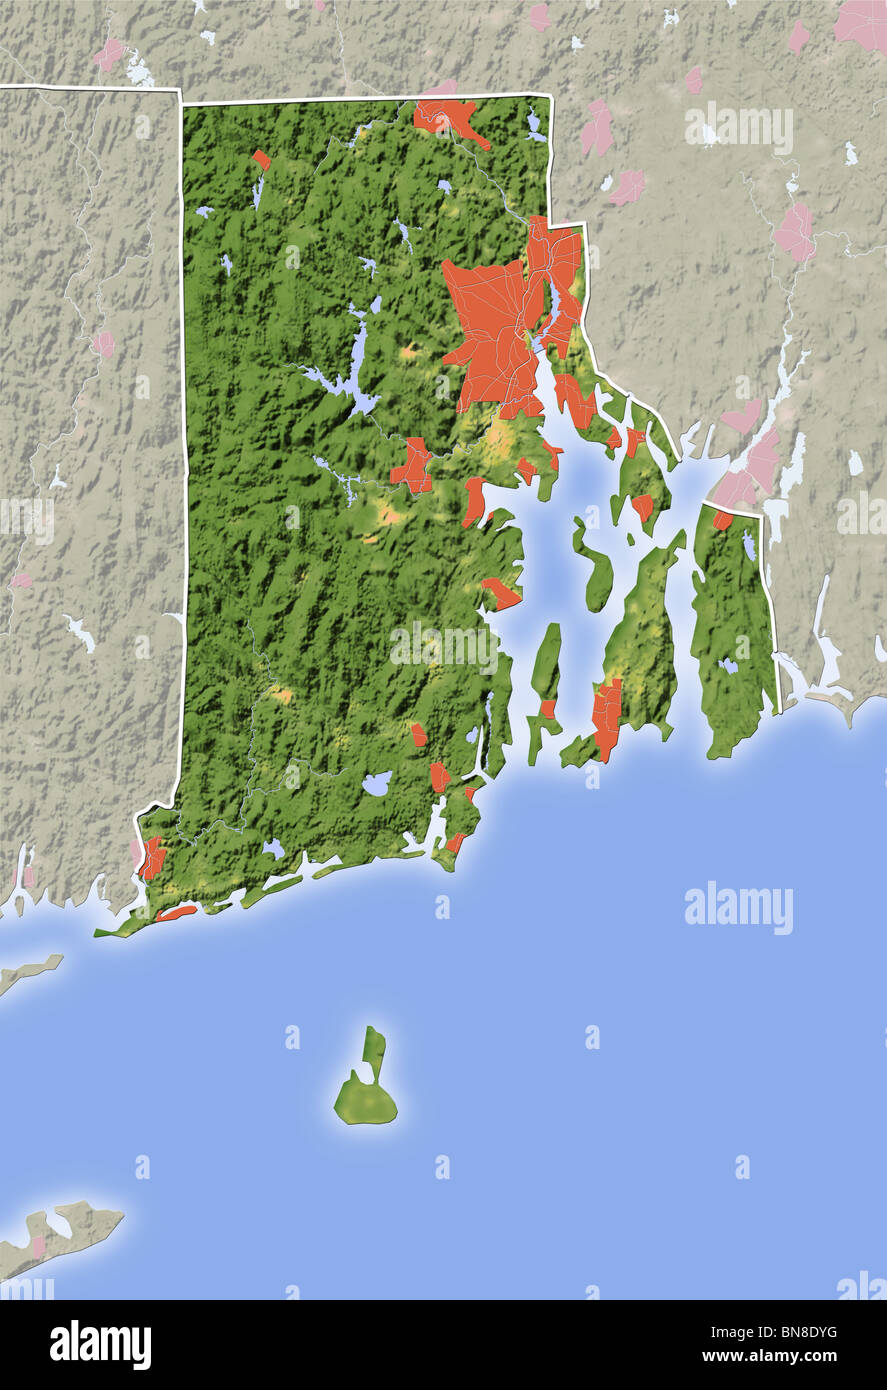 Topographic Map Rhode Island.Rhode Island Shaded Relief Map Stock Photo 30304724 Alamy